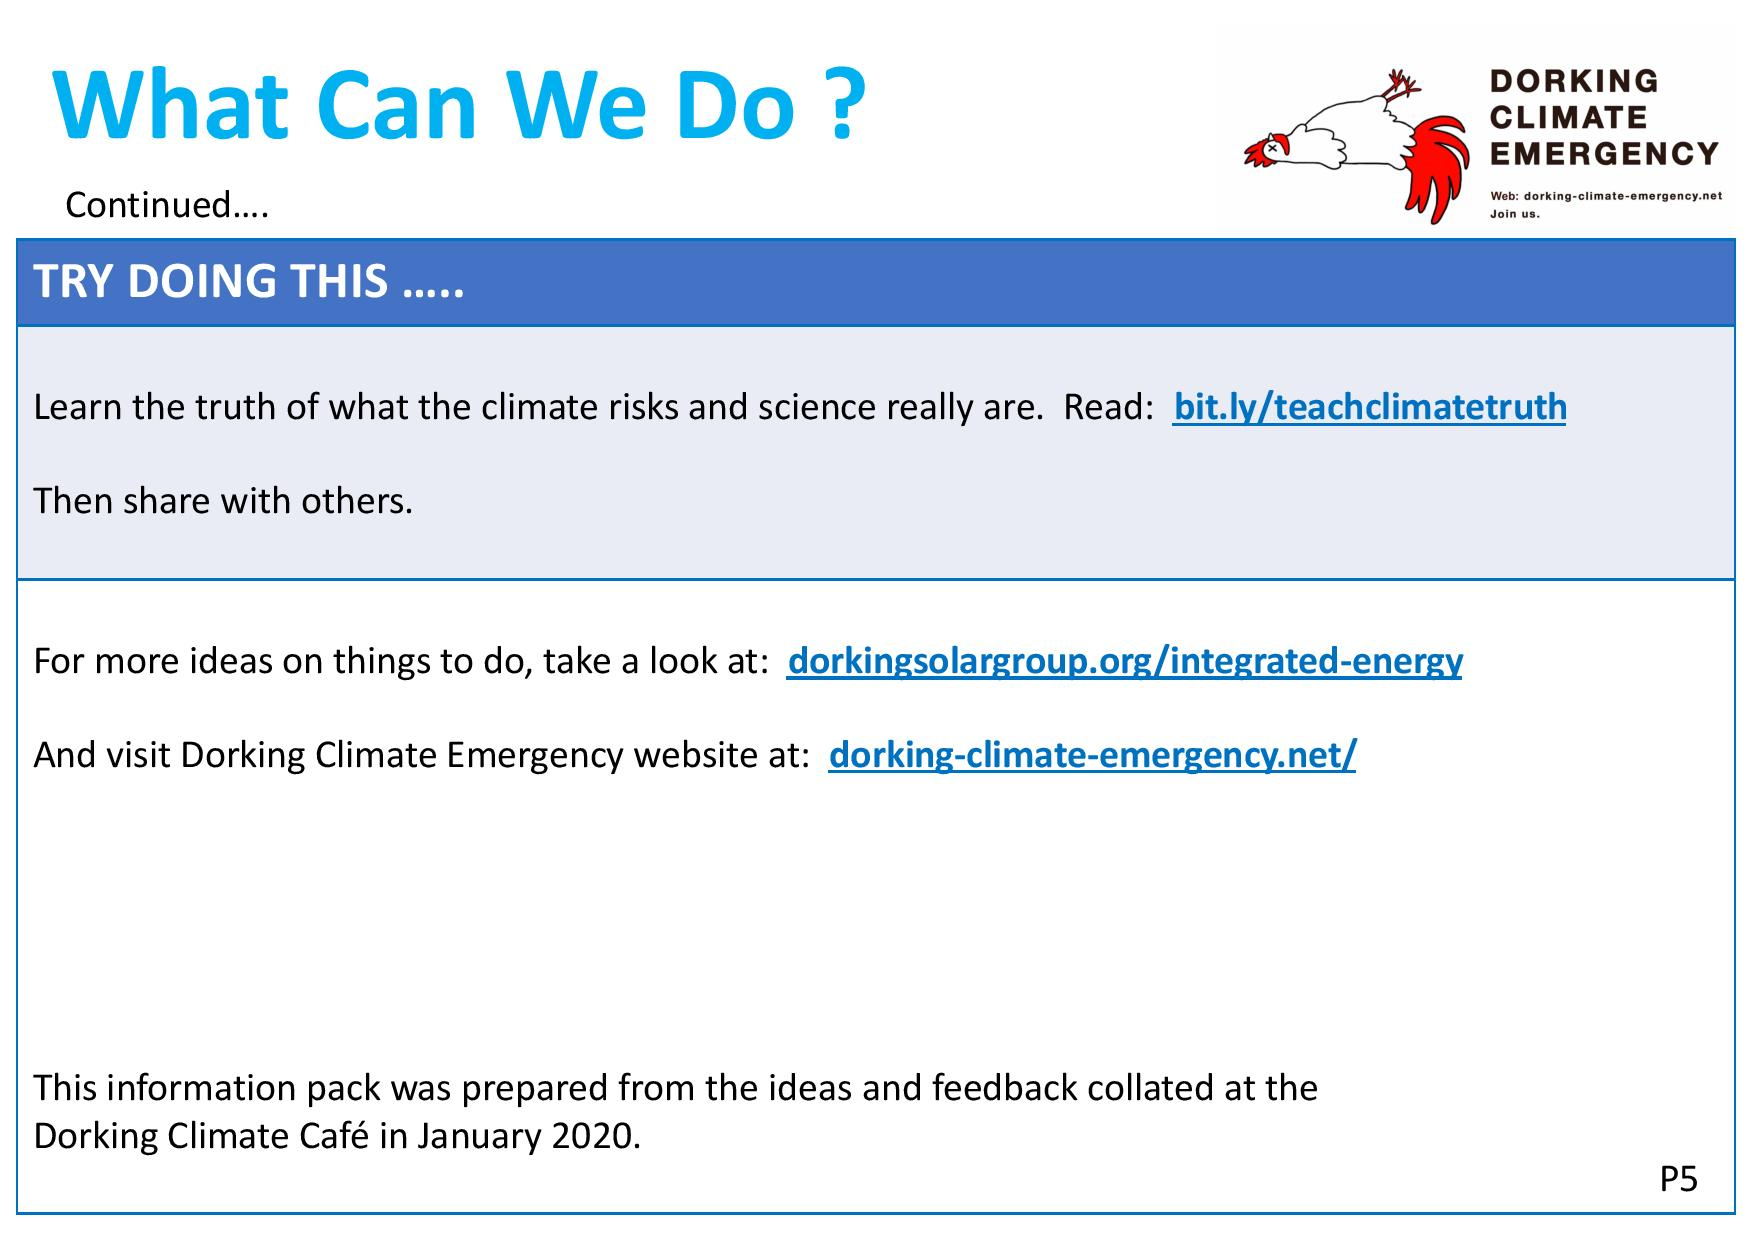 DCE What Can We Do Climate Café Jan 19-page-005